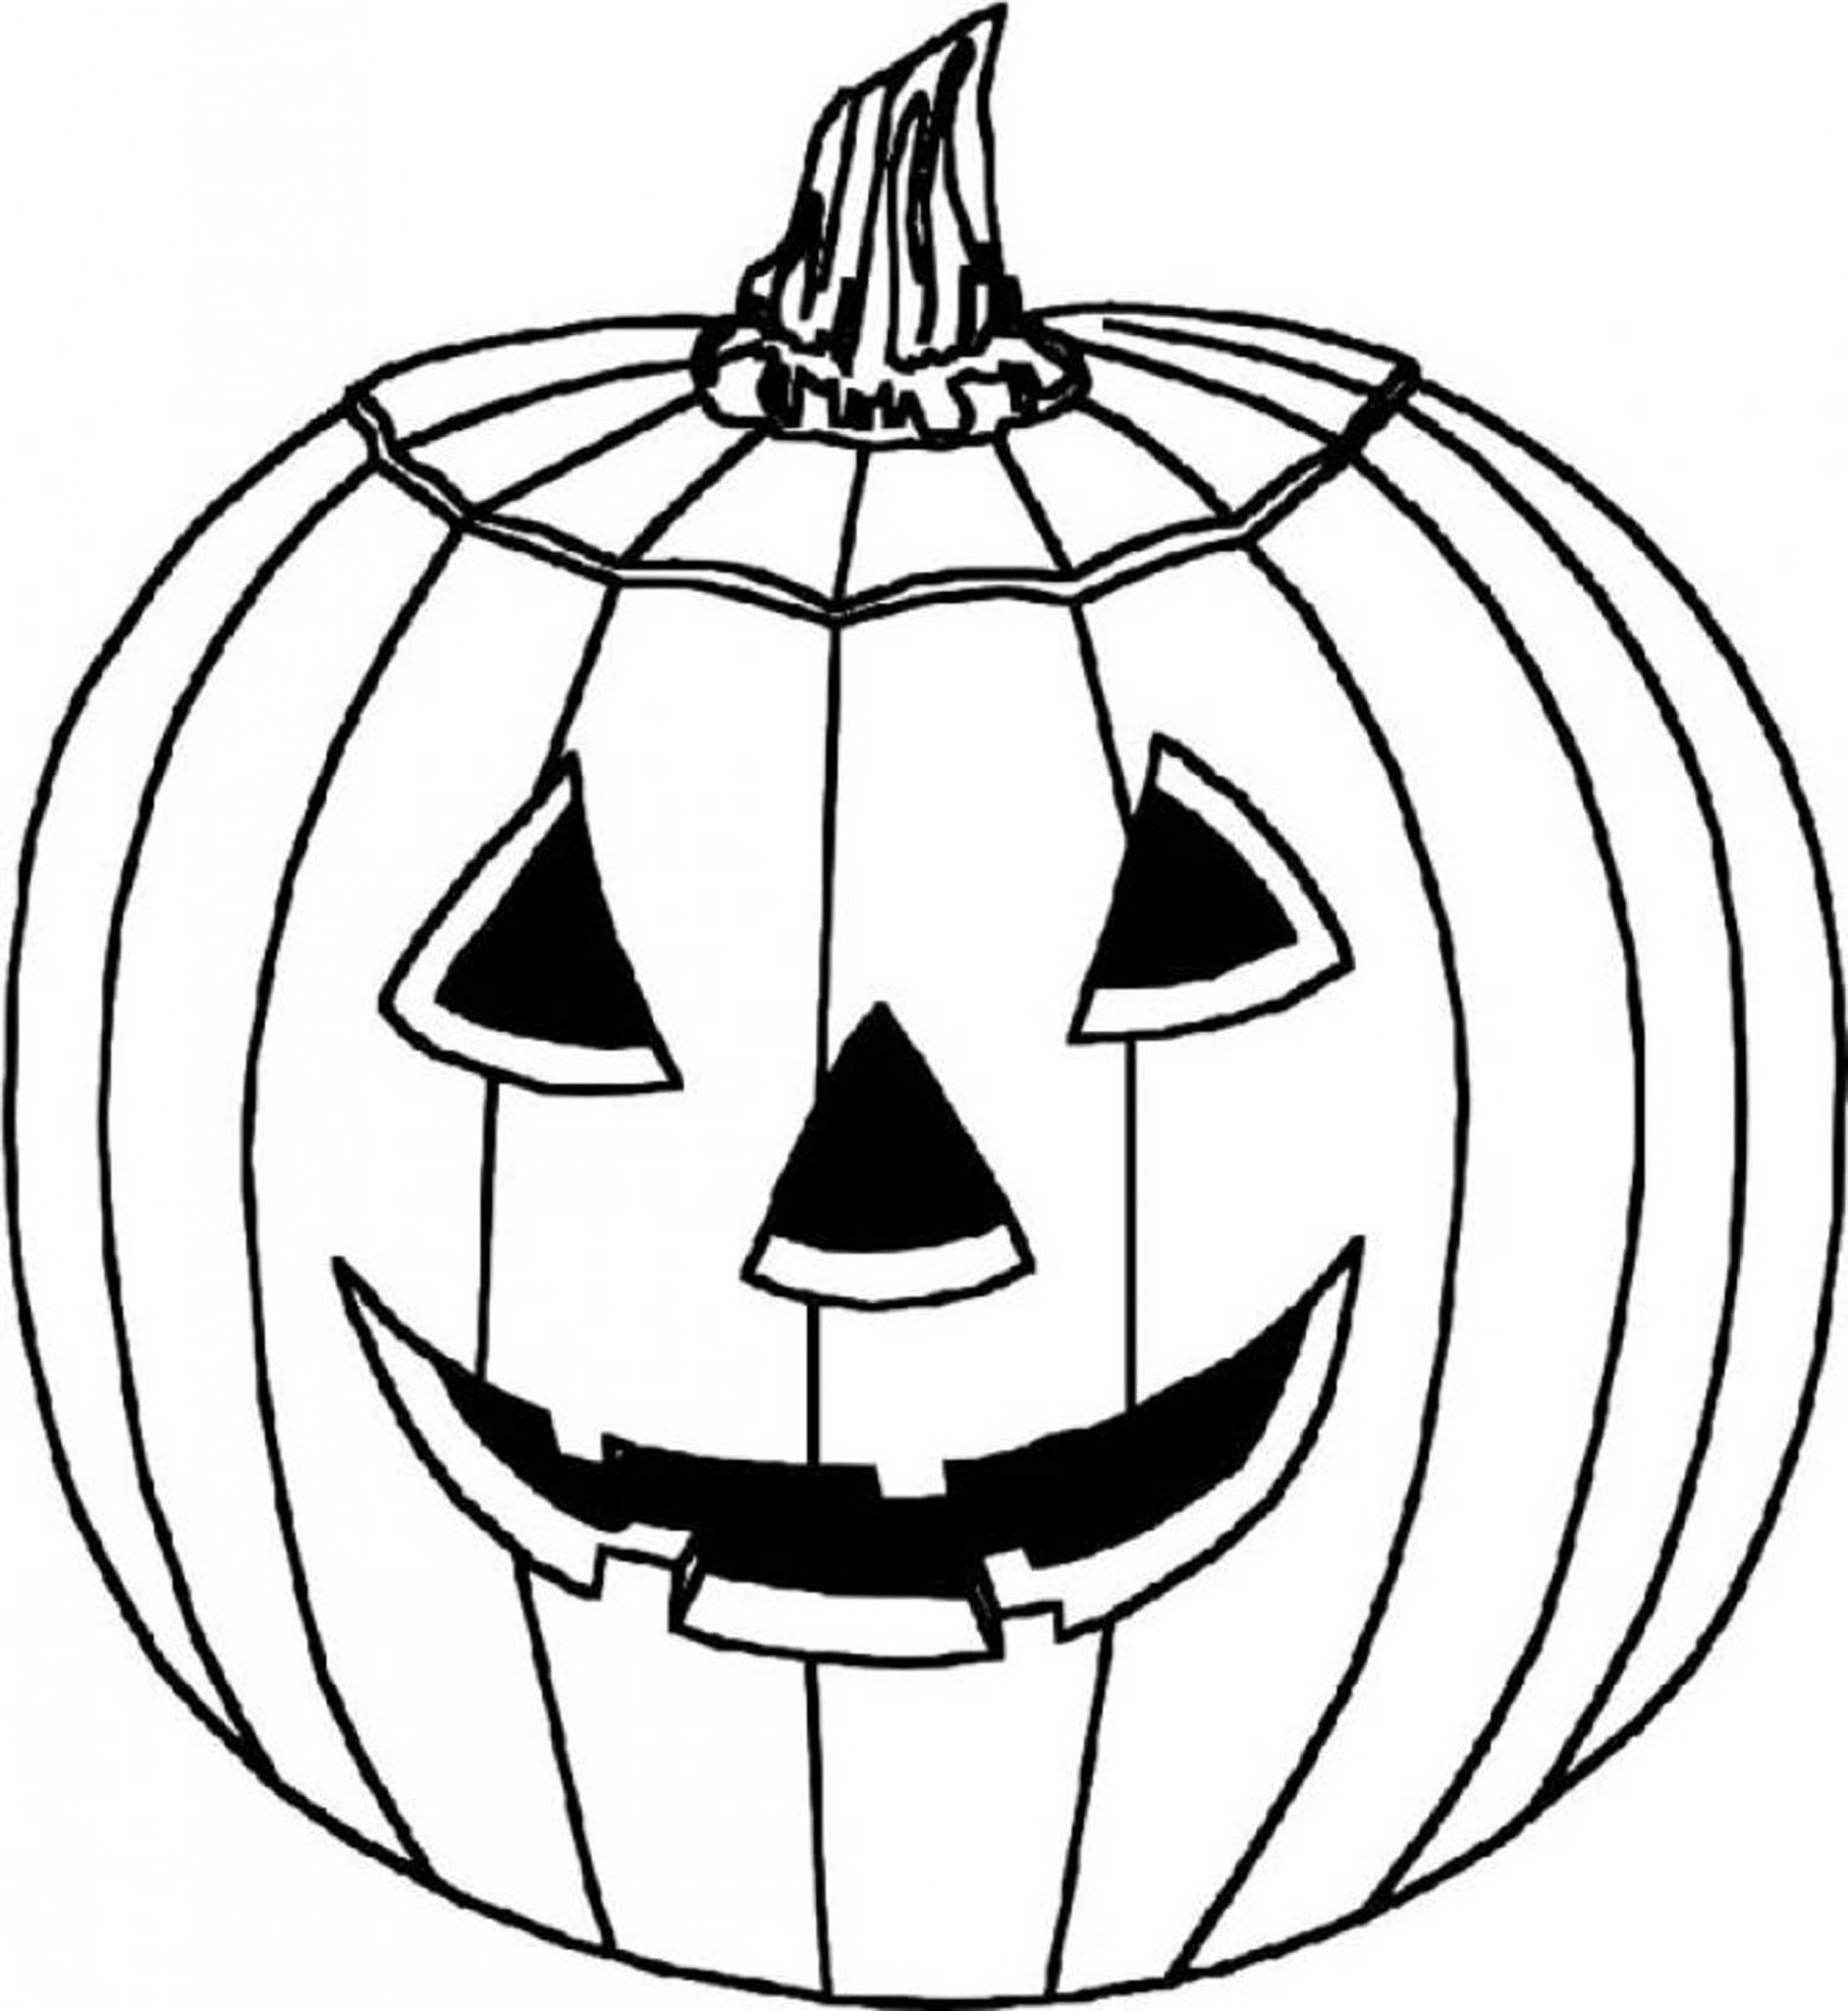 Coloring pages for halloween pumpkins - Shop Related Products